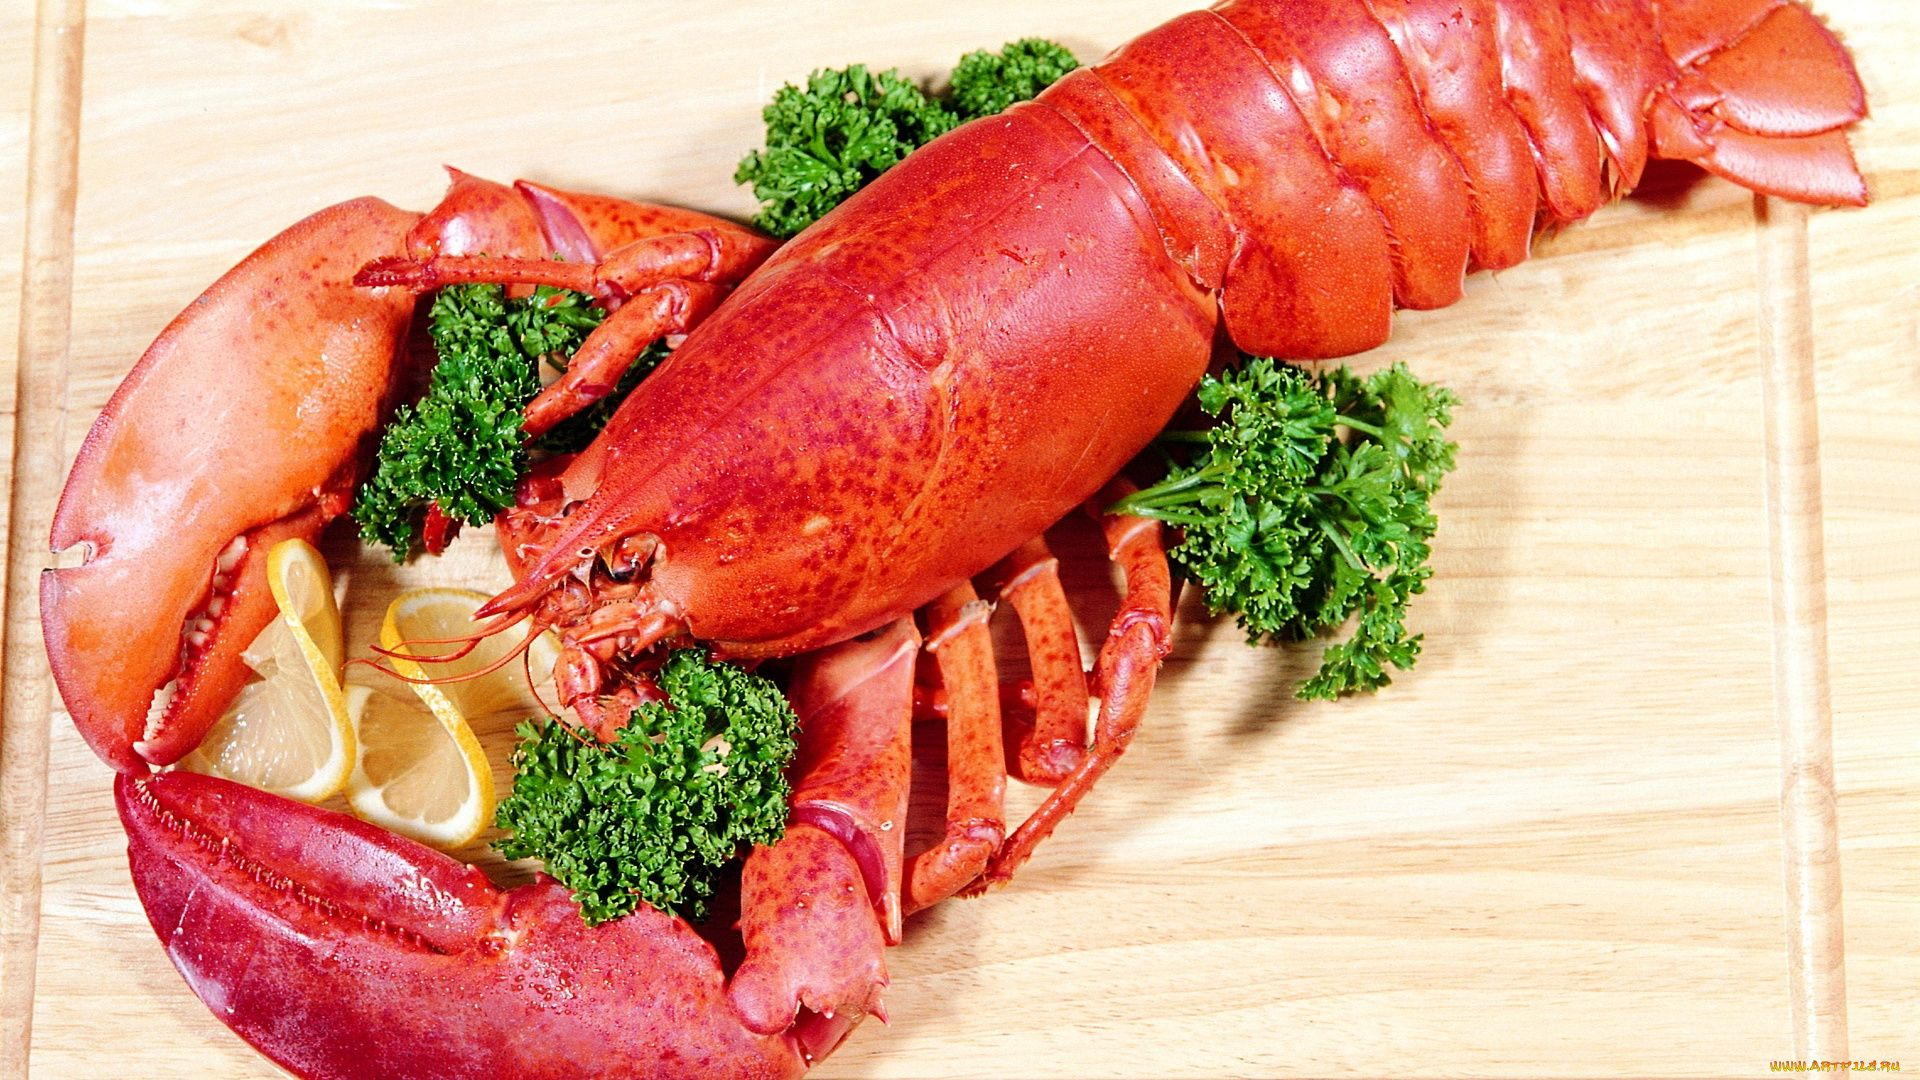 Lobster hd wallpaper 1080p for pc